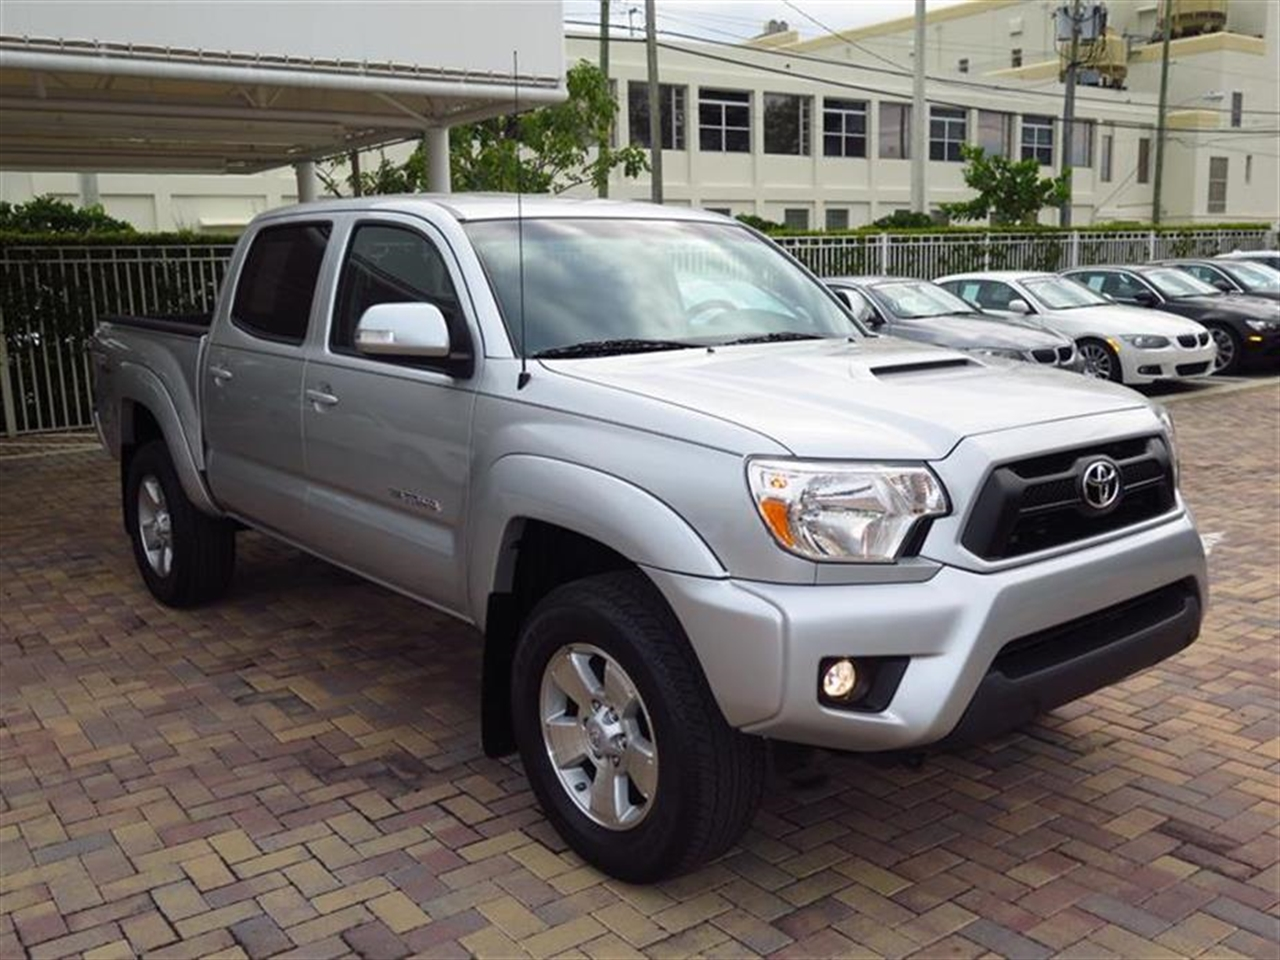 2013 TOYO TACOMA 2WD Double Cab V6 AT PreRunner 12572 miles 5 cup holders  bottle holders 60